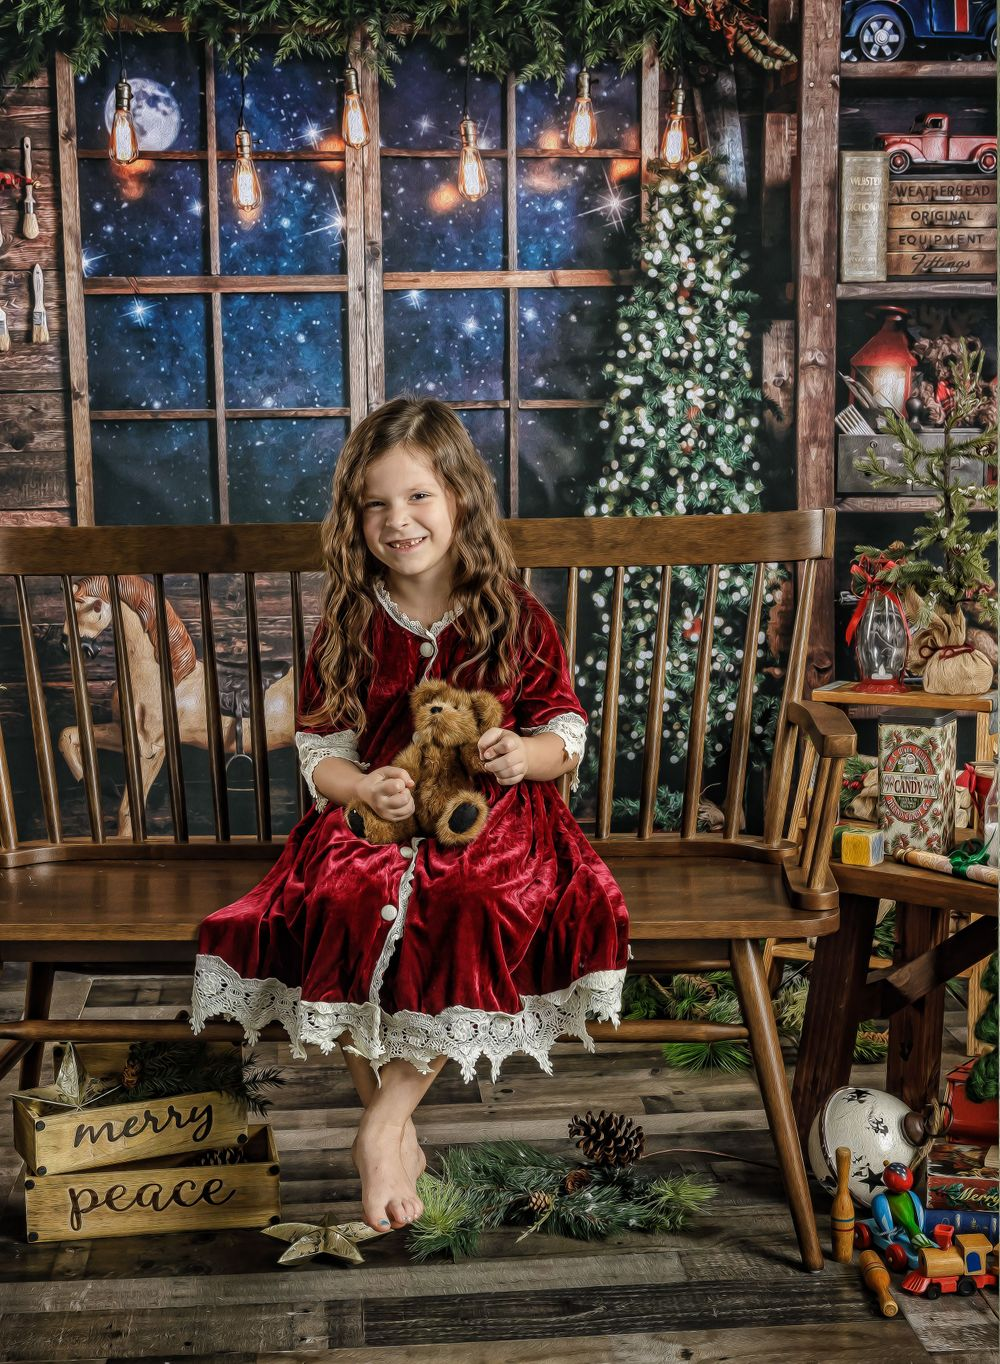 austin newborn photograpy 2020 Magic of the Holidays Limited edition Santa's Magical Workshop with teddy bear